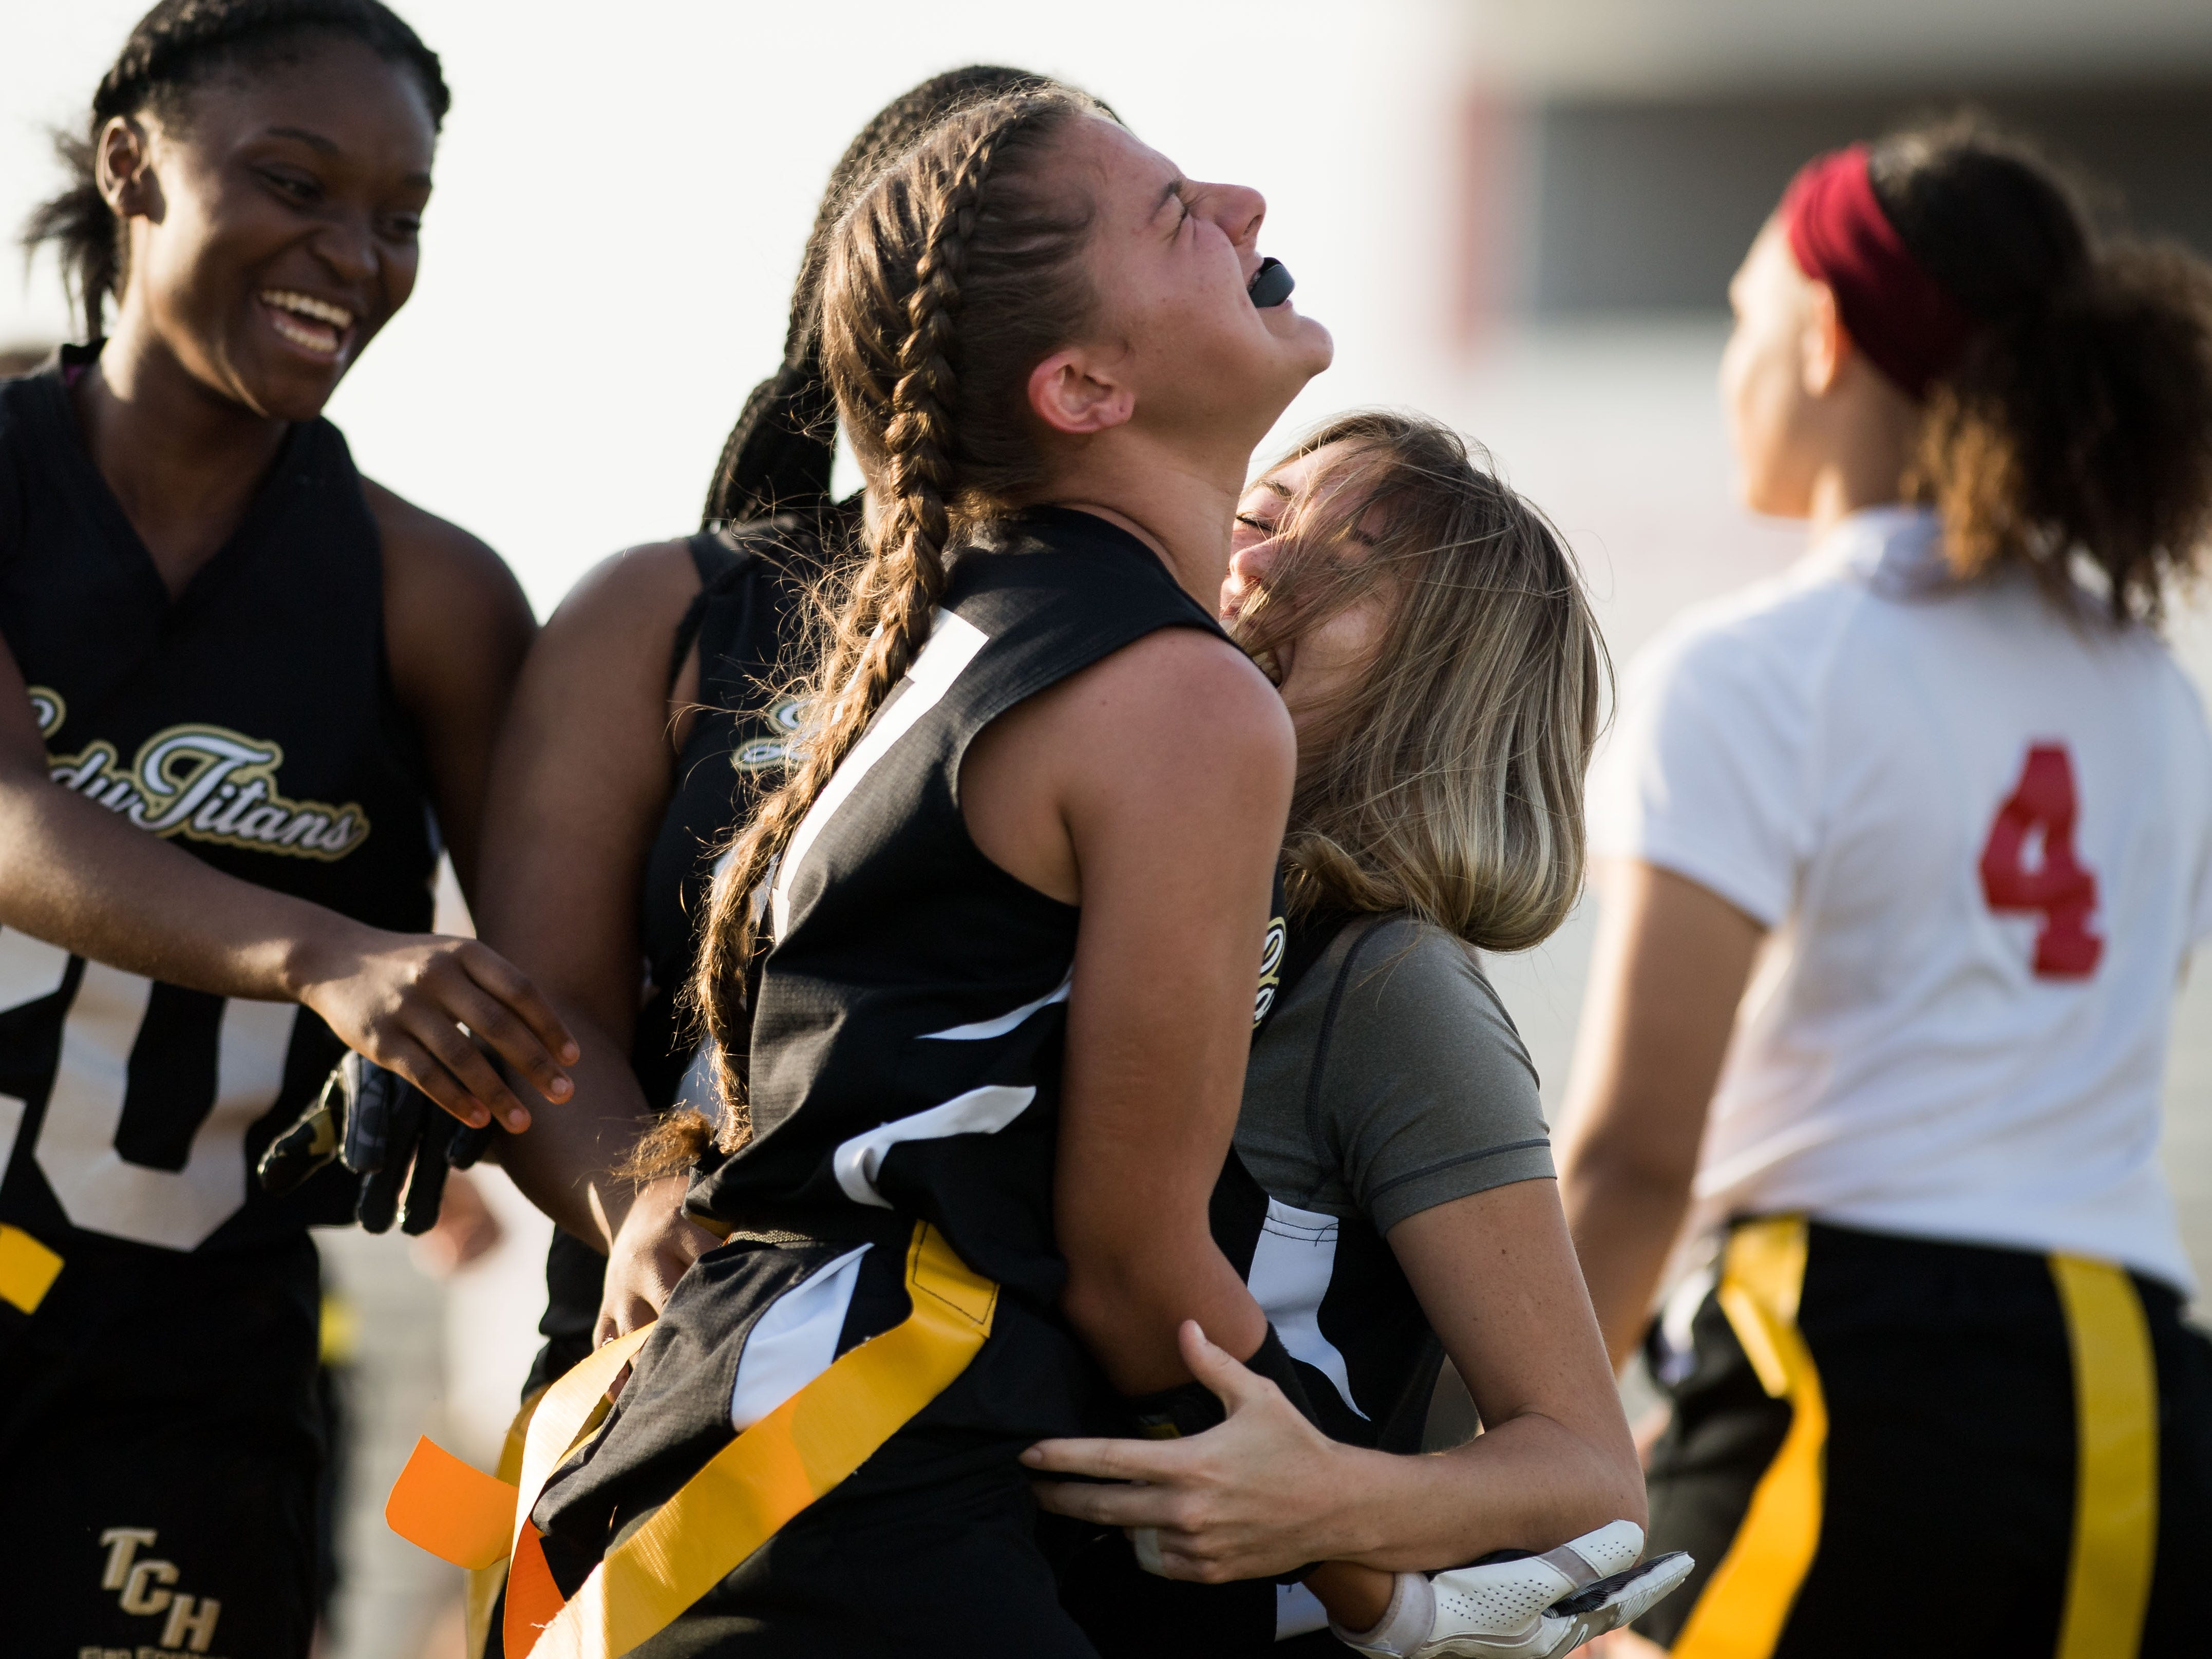 Treasure Coast's Valentina Breault (center) congratulates teammate Savannah Hawthorne (right) for catching the game-winning touchdown in the fourth quarter against Vero Beach during the high school flag football game Wednesday, March 13, 2019, at Vero Beach High School. Teammate Tianne Blagrove (far left) also reaches in for a hug.